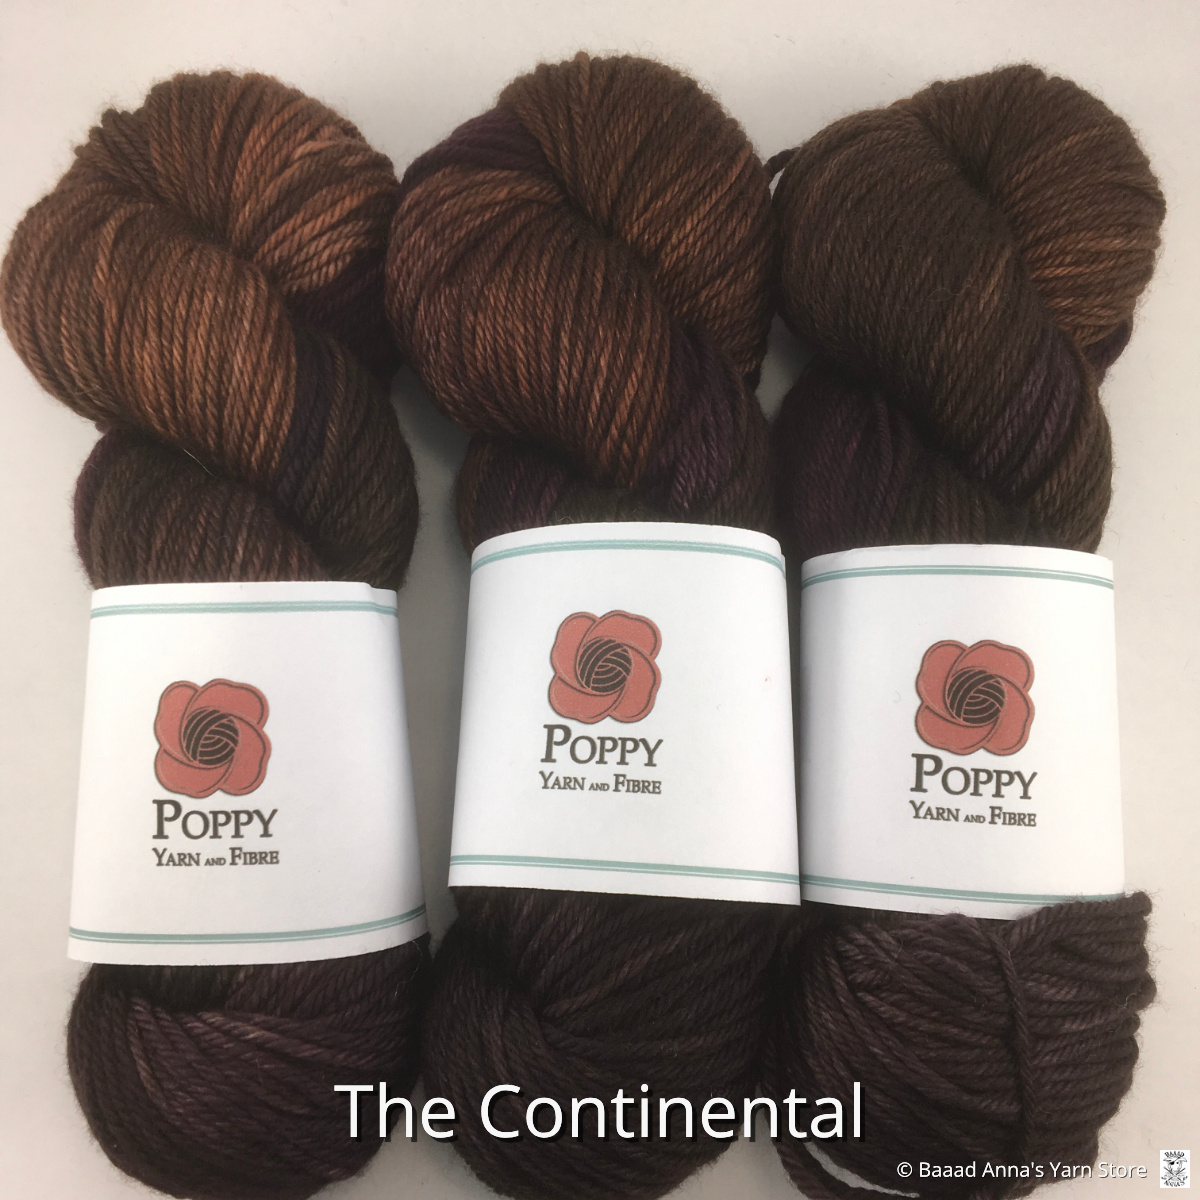 Poppy Yarn and Fibre Poppy Yarn and Fibre Revelstoke Worsted